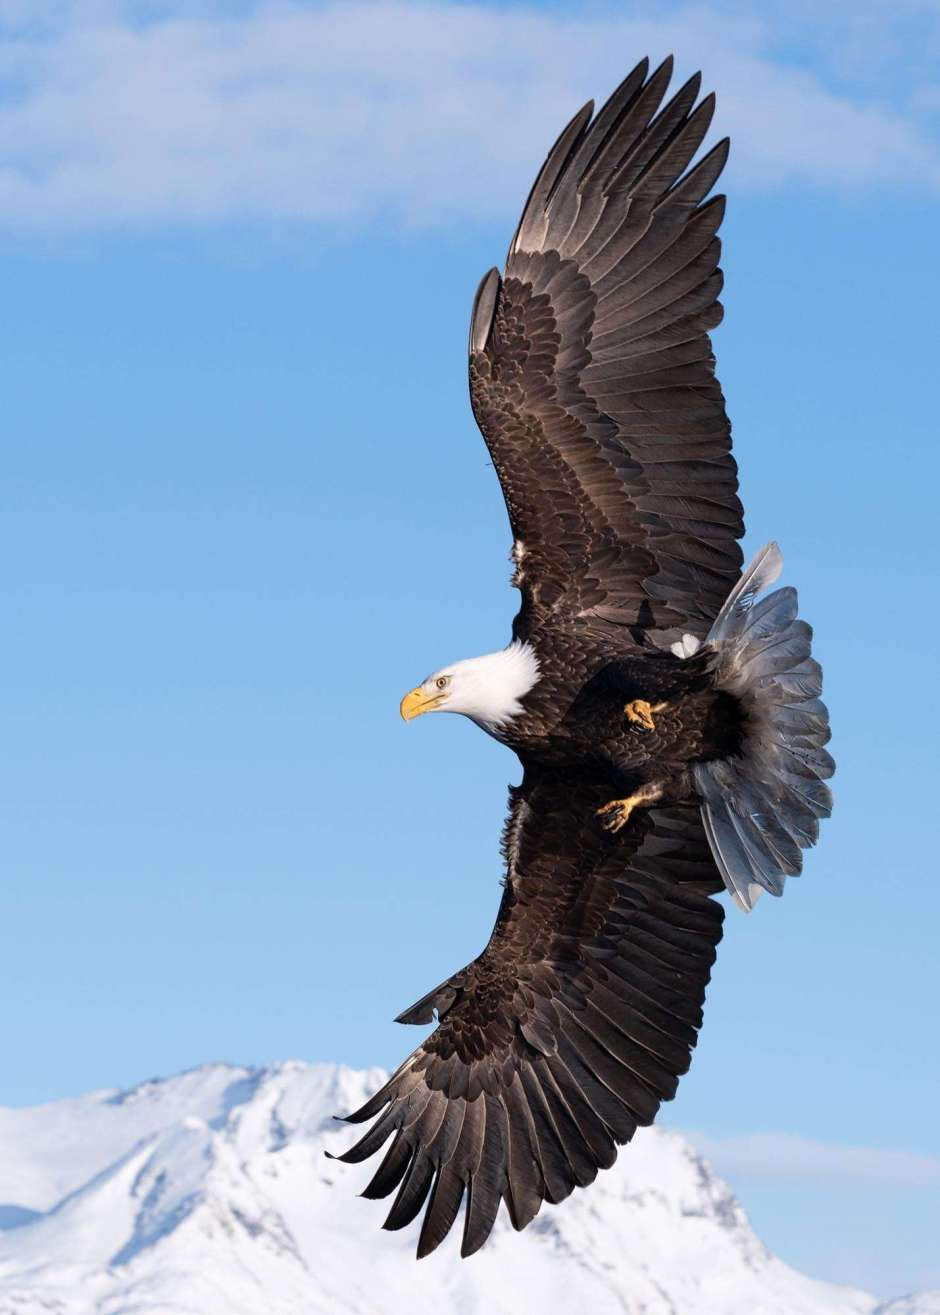 A photograph of an eagle soaring by Scott Bourne